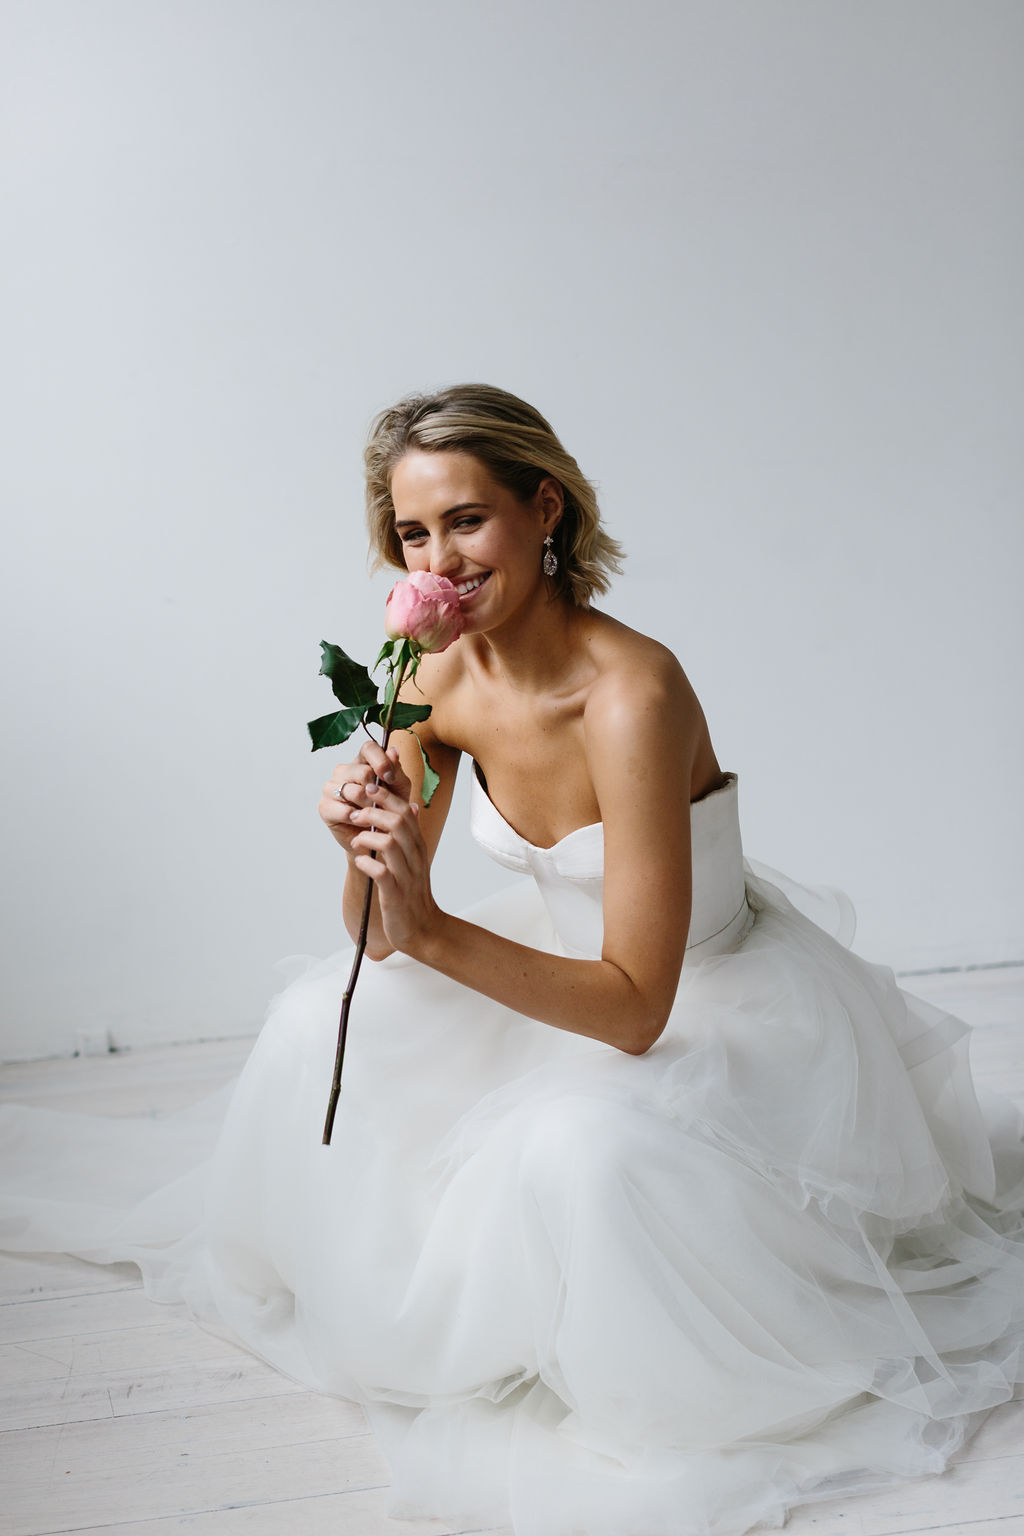 Perfect bride with single rose boutique in strapless wedding dress for Amelie George Campaign